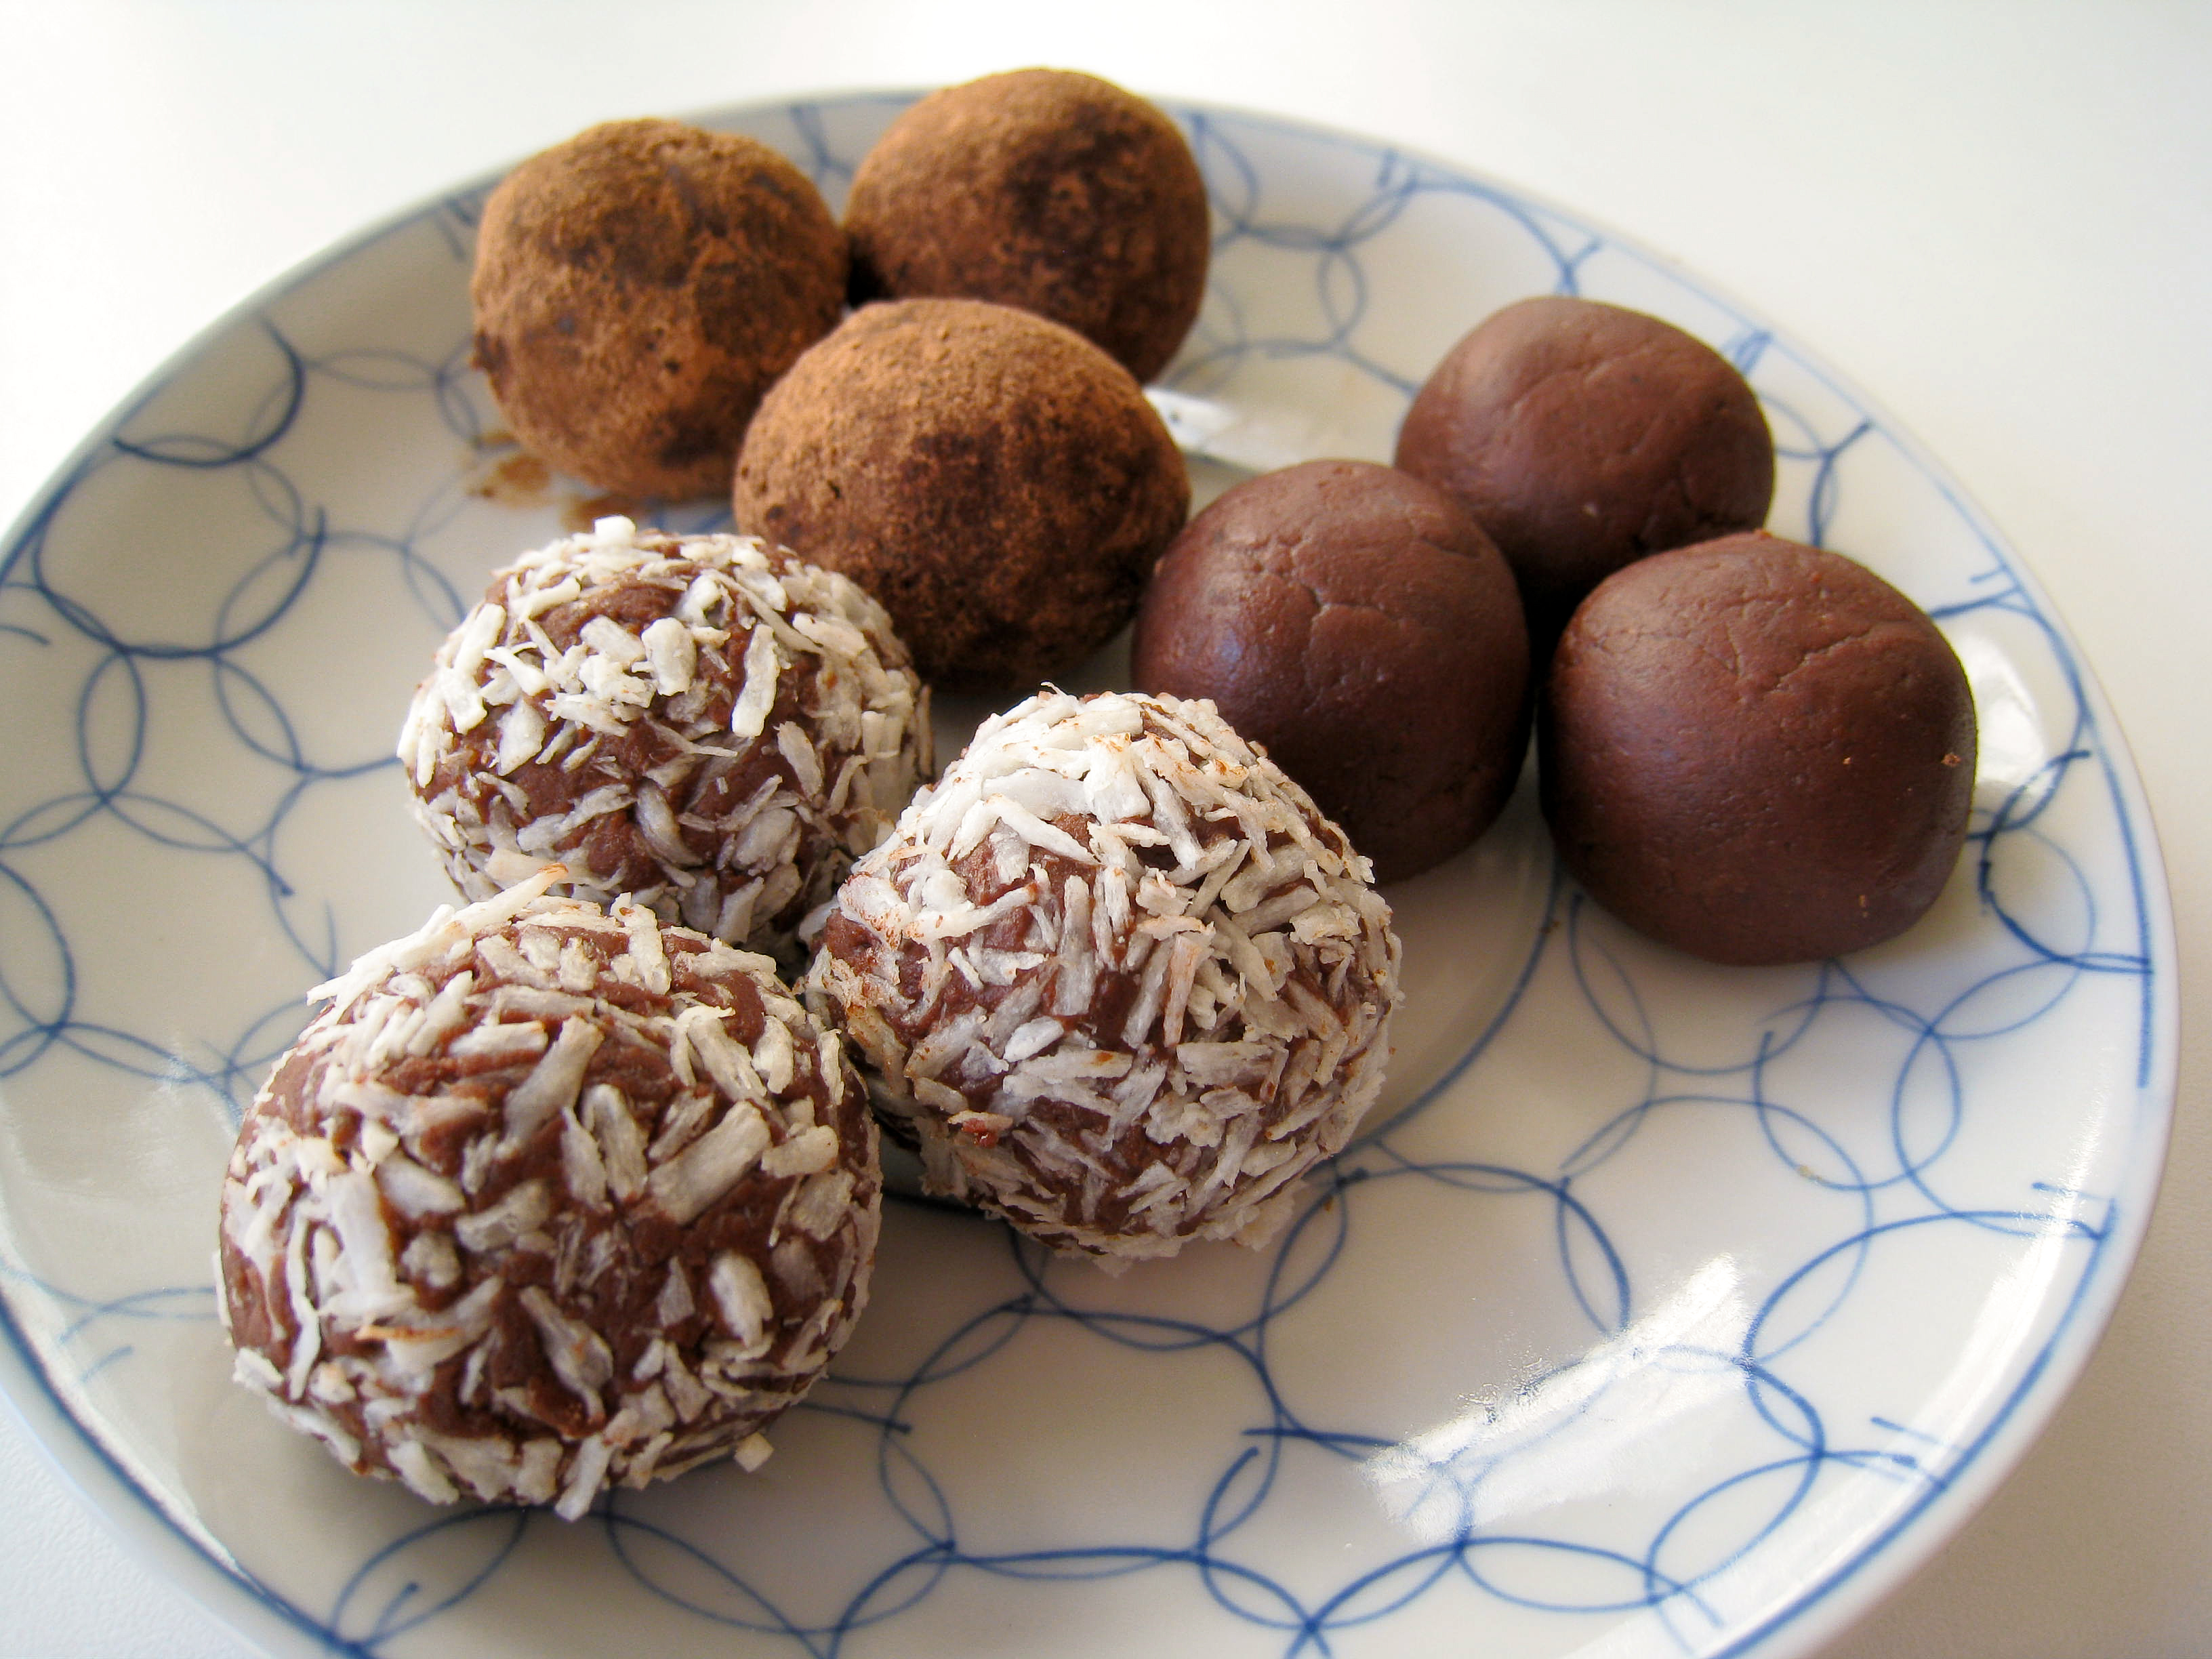 File:Vegan Chocolate Truffles.jpg - Wikipedia